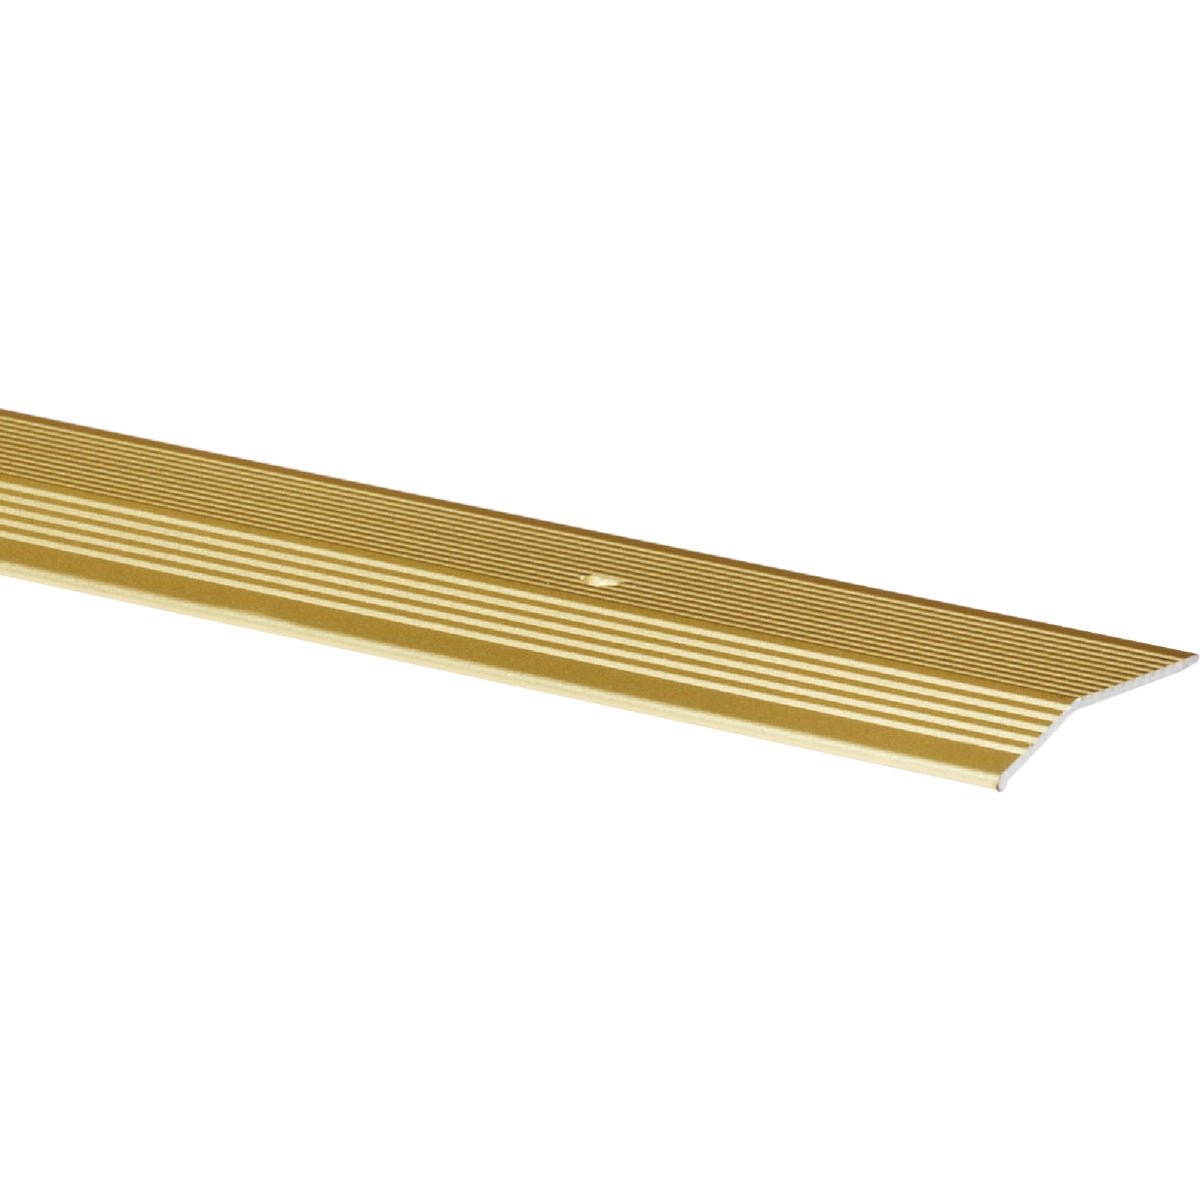 "2""X3' GOLD CARPET BAR - H1591FB3DI by Thermwell Prods Co"